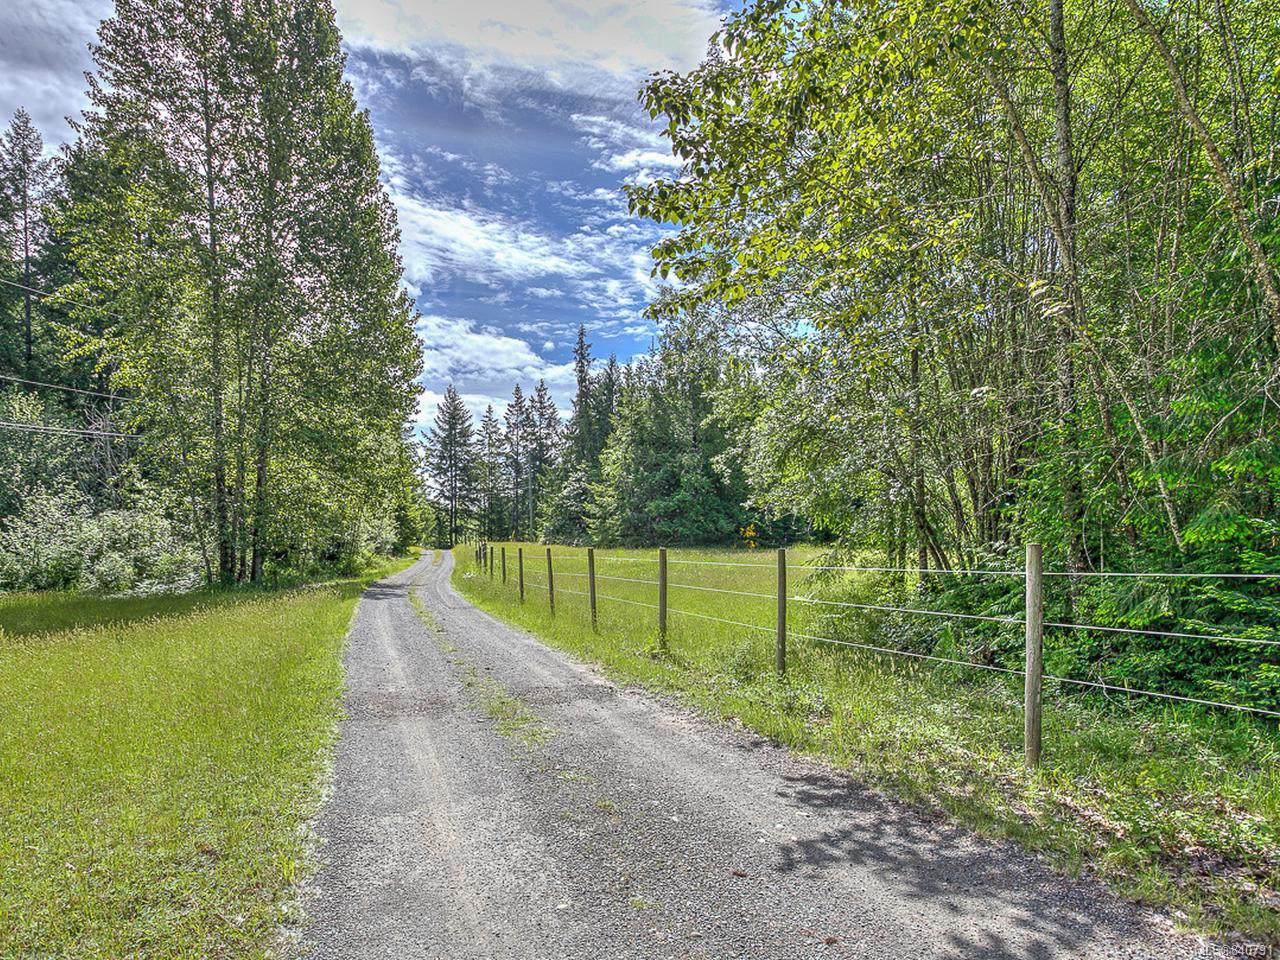 Main Photo: 4832 Waters Rd in DUNCAN: Du Cowichan Station/Glenora Single Family Detached for sale (Duncan)  : MLS®# 840791